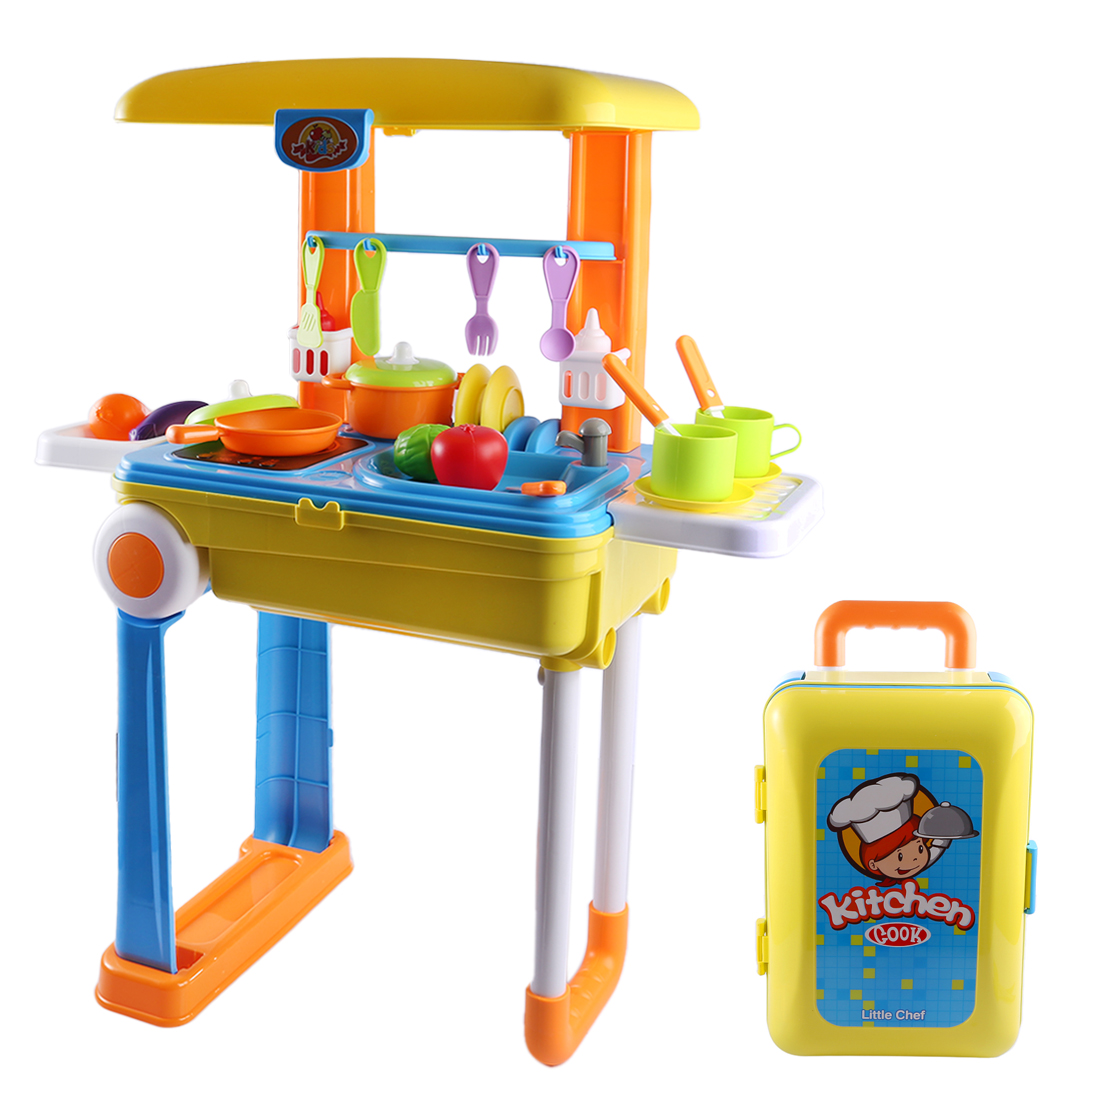 Kids Kitchen Set Children Kitchen Toys Large Kitchen Cooking Simulation Model Educational Toy for Baby with